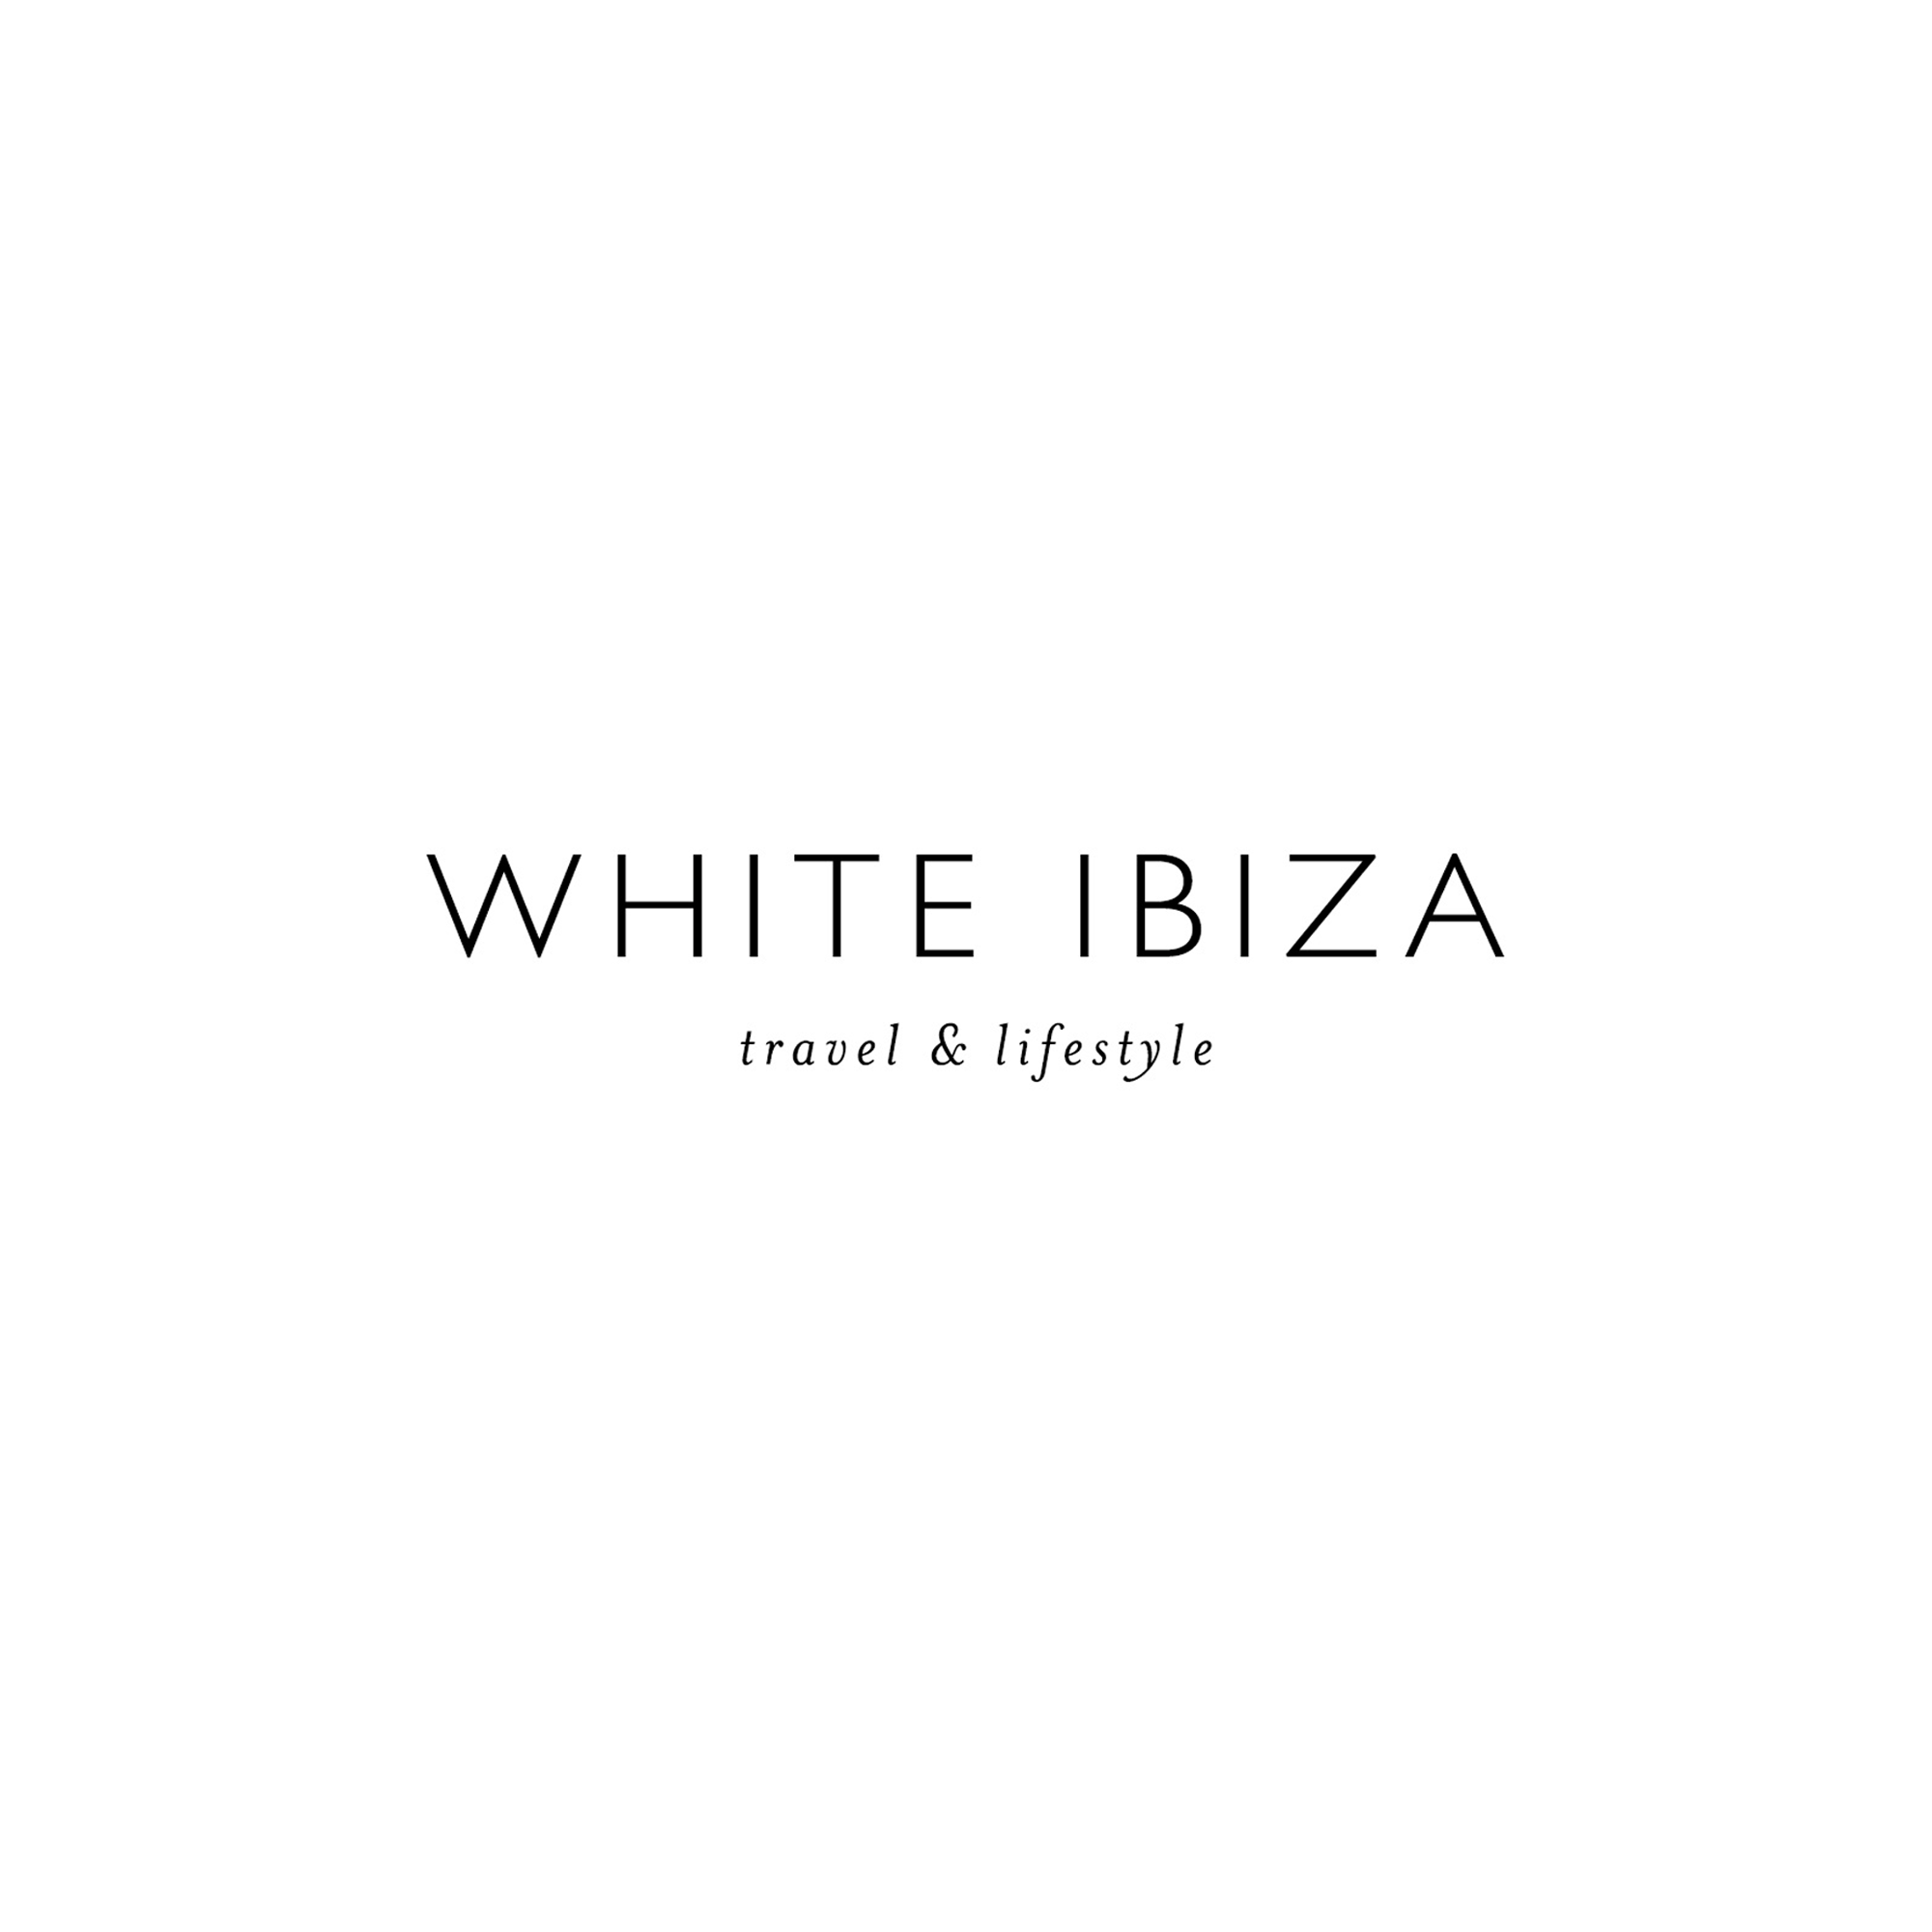 White Ibiza Wedding Guide Nigel Edgecombe Photographs